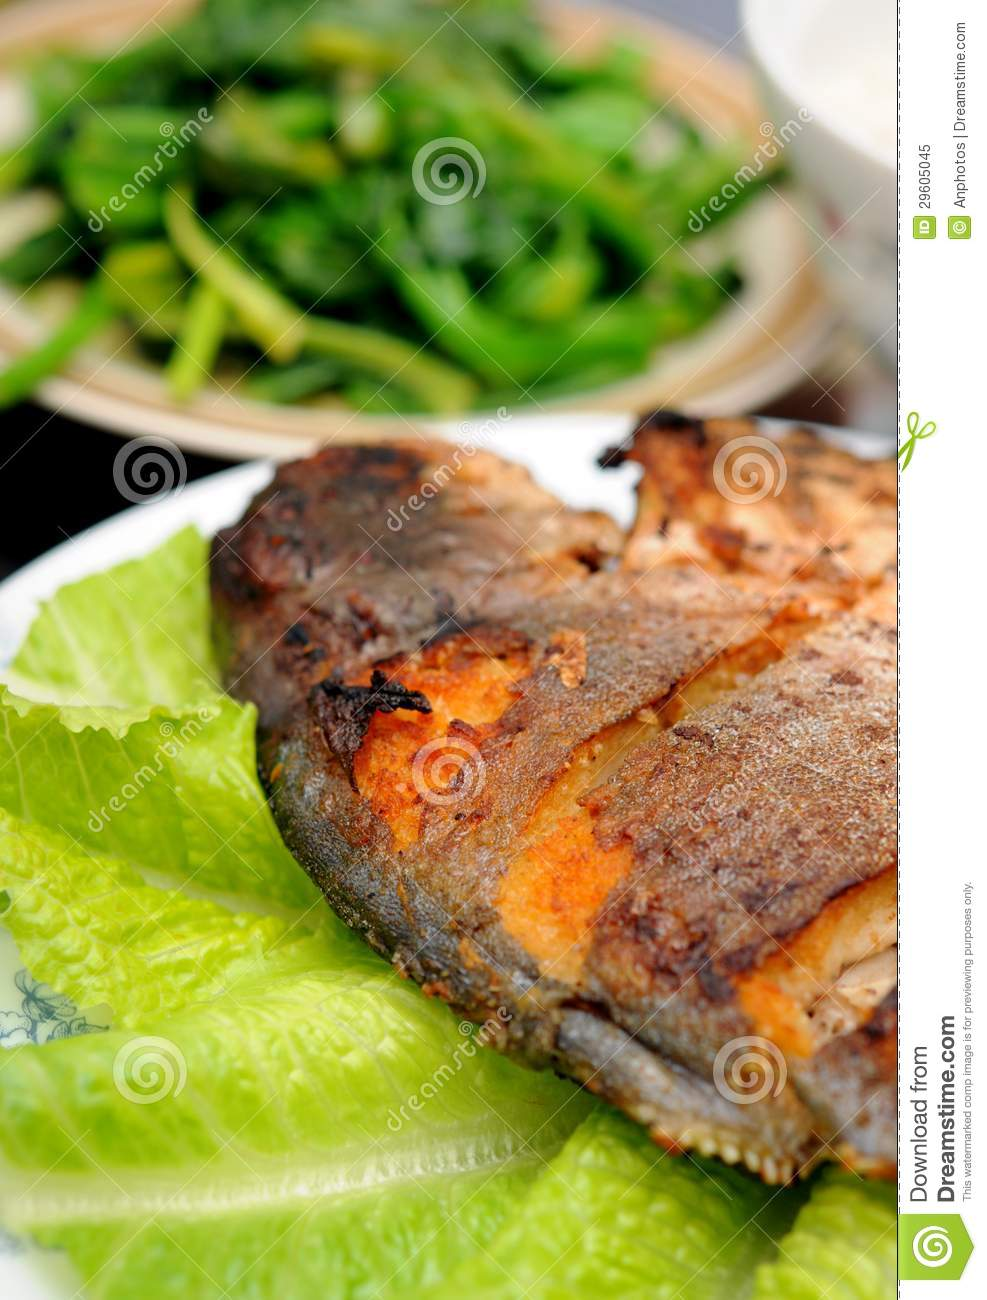 Deep fried butter fish royalty free stock photo image for What to serve with fish